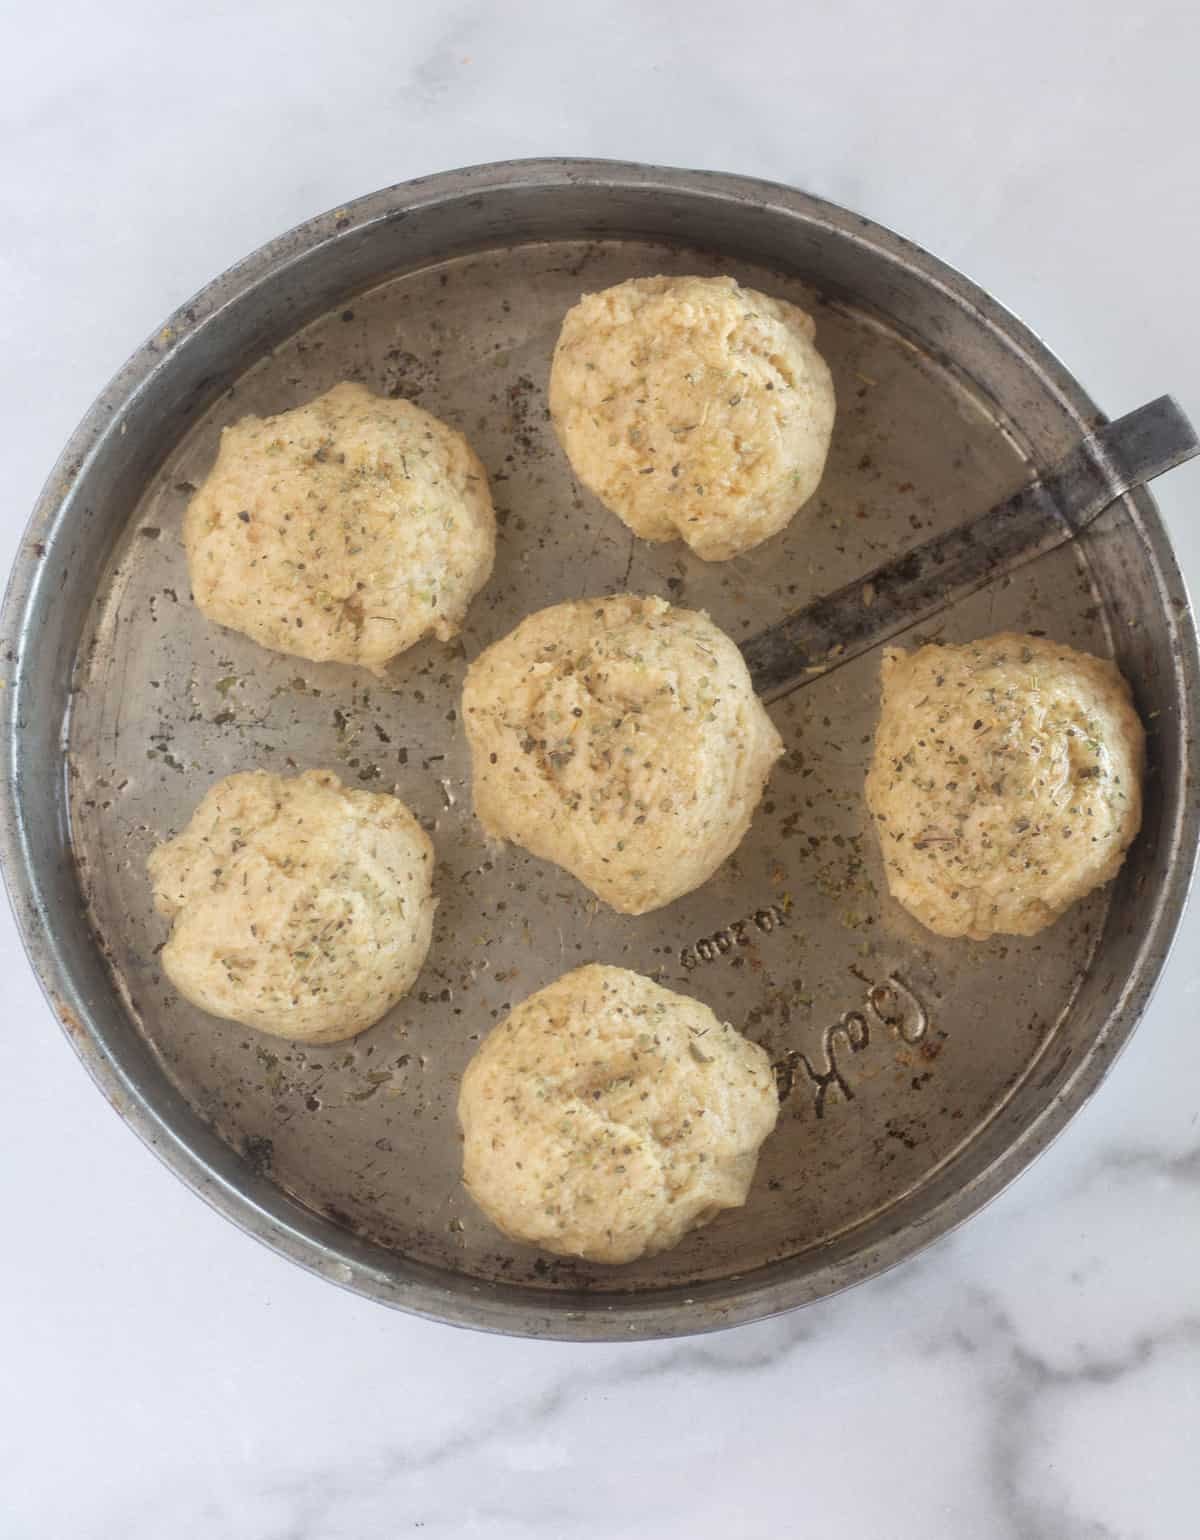 unbaked rolls in pan